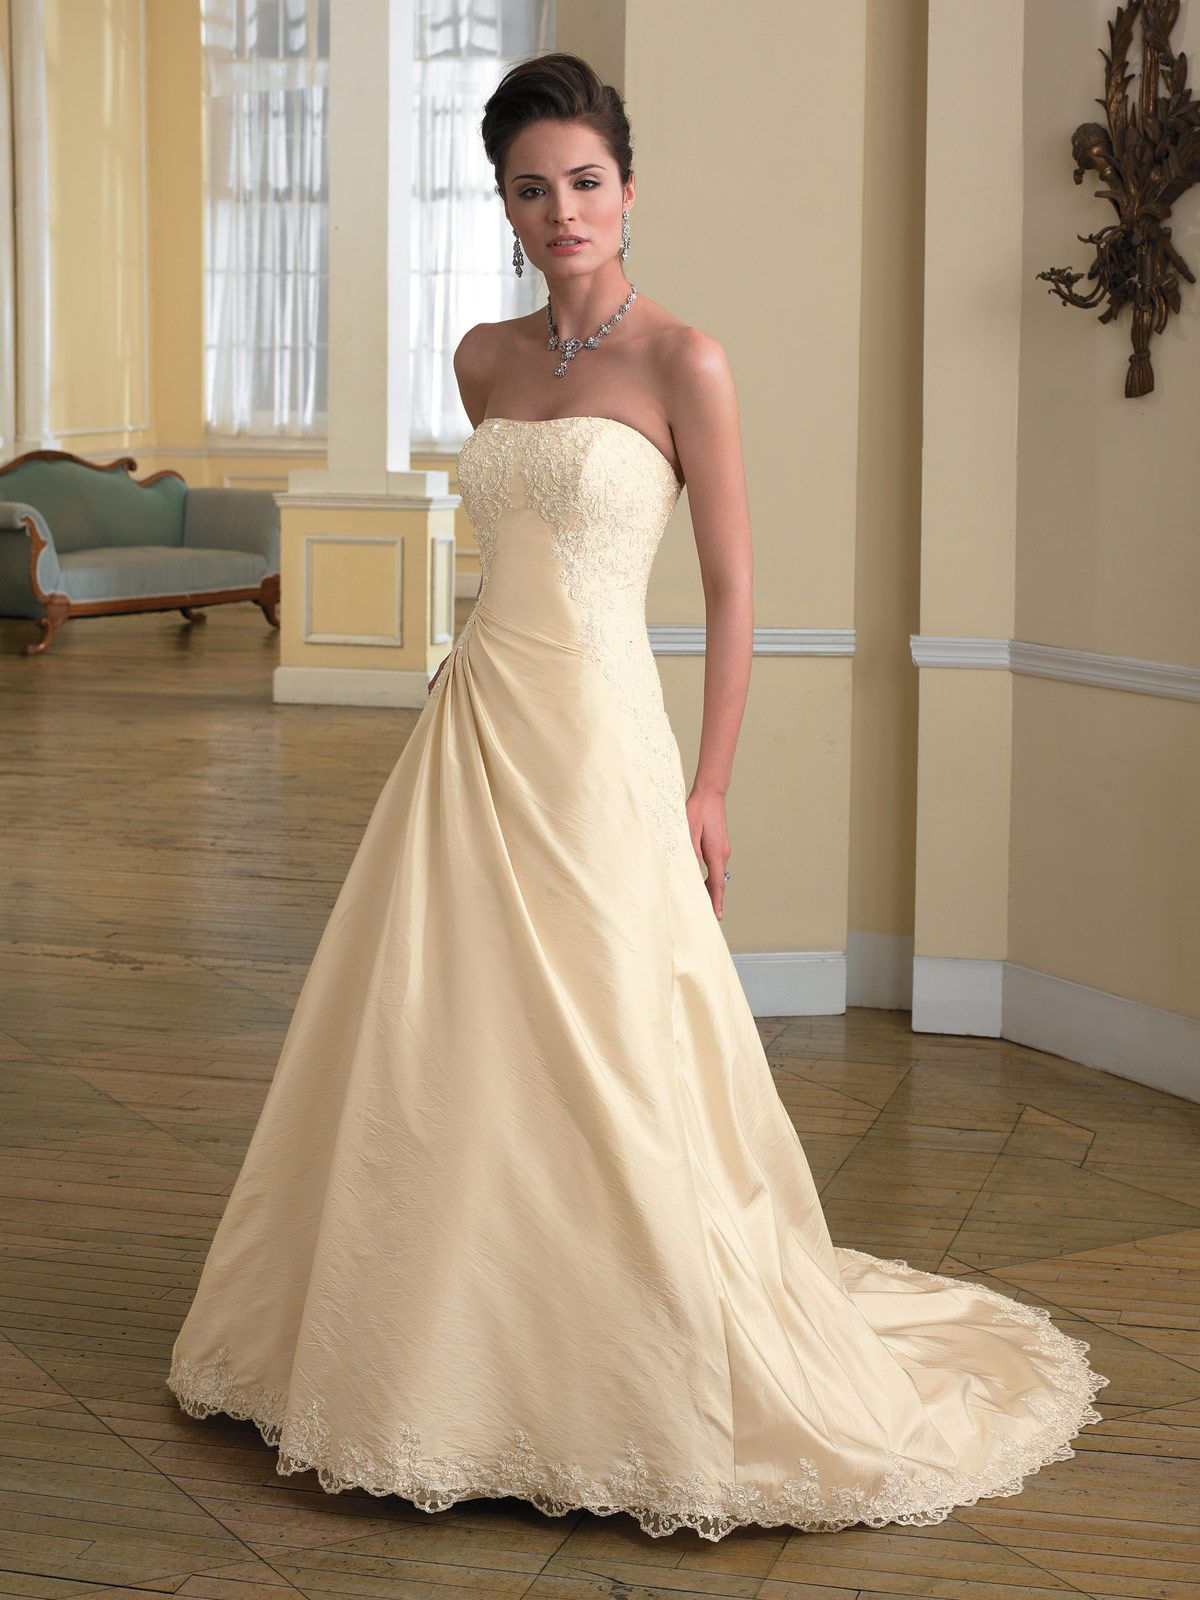 Style No €� Y2725 Heather Description Strapless Taffeta And Lace Slim Aline Gown Side Draped Skirt With Trim Corset Back Bodice Chapel Length: Taffeta Lace Wedding Dress Look No At Reisefeber.org